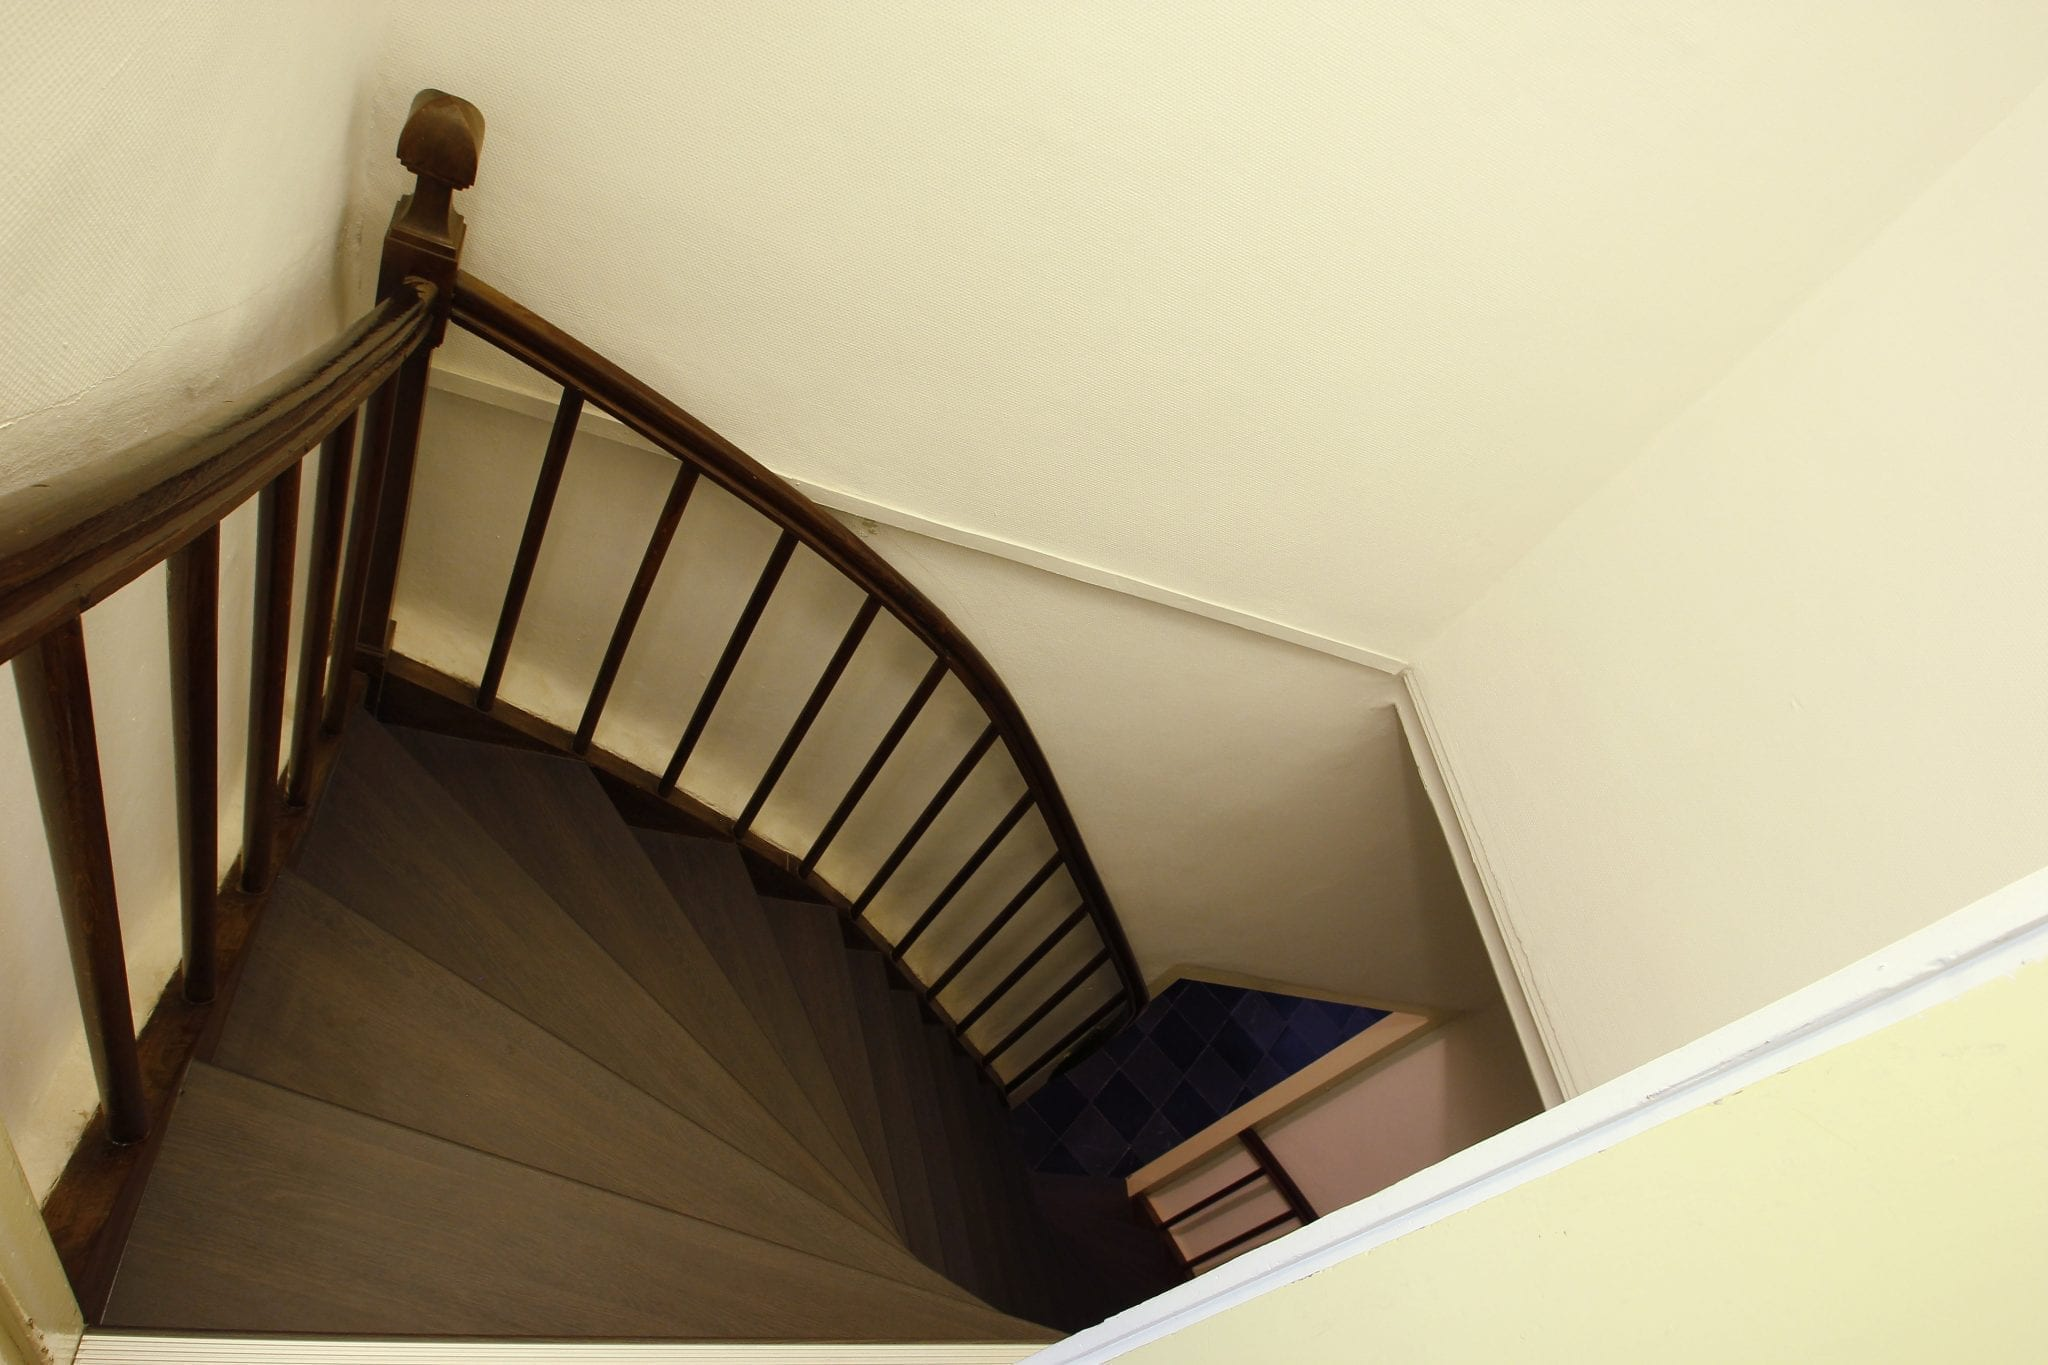 Je trap behandelen tips tricks upstairs traprenovatie - Versier een trap ...